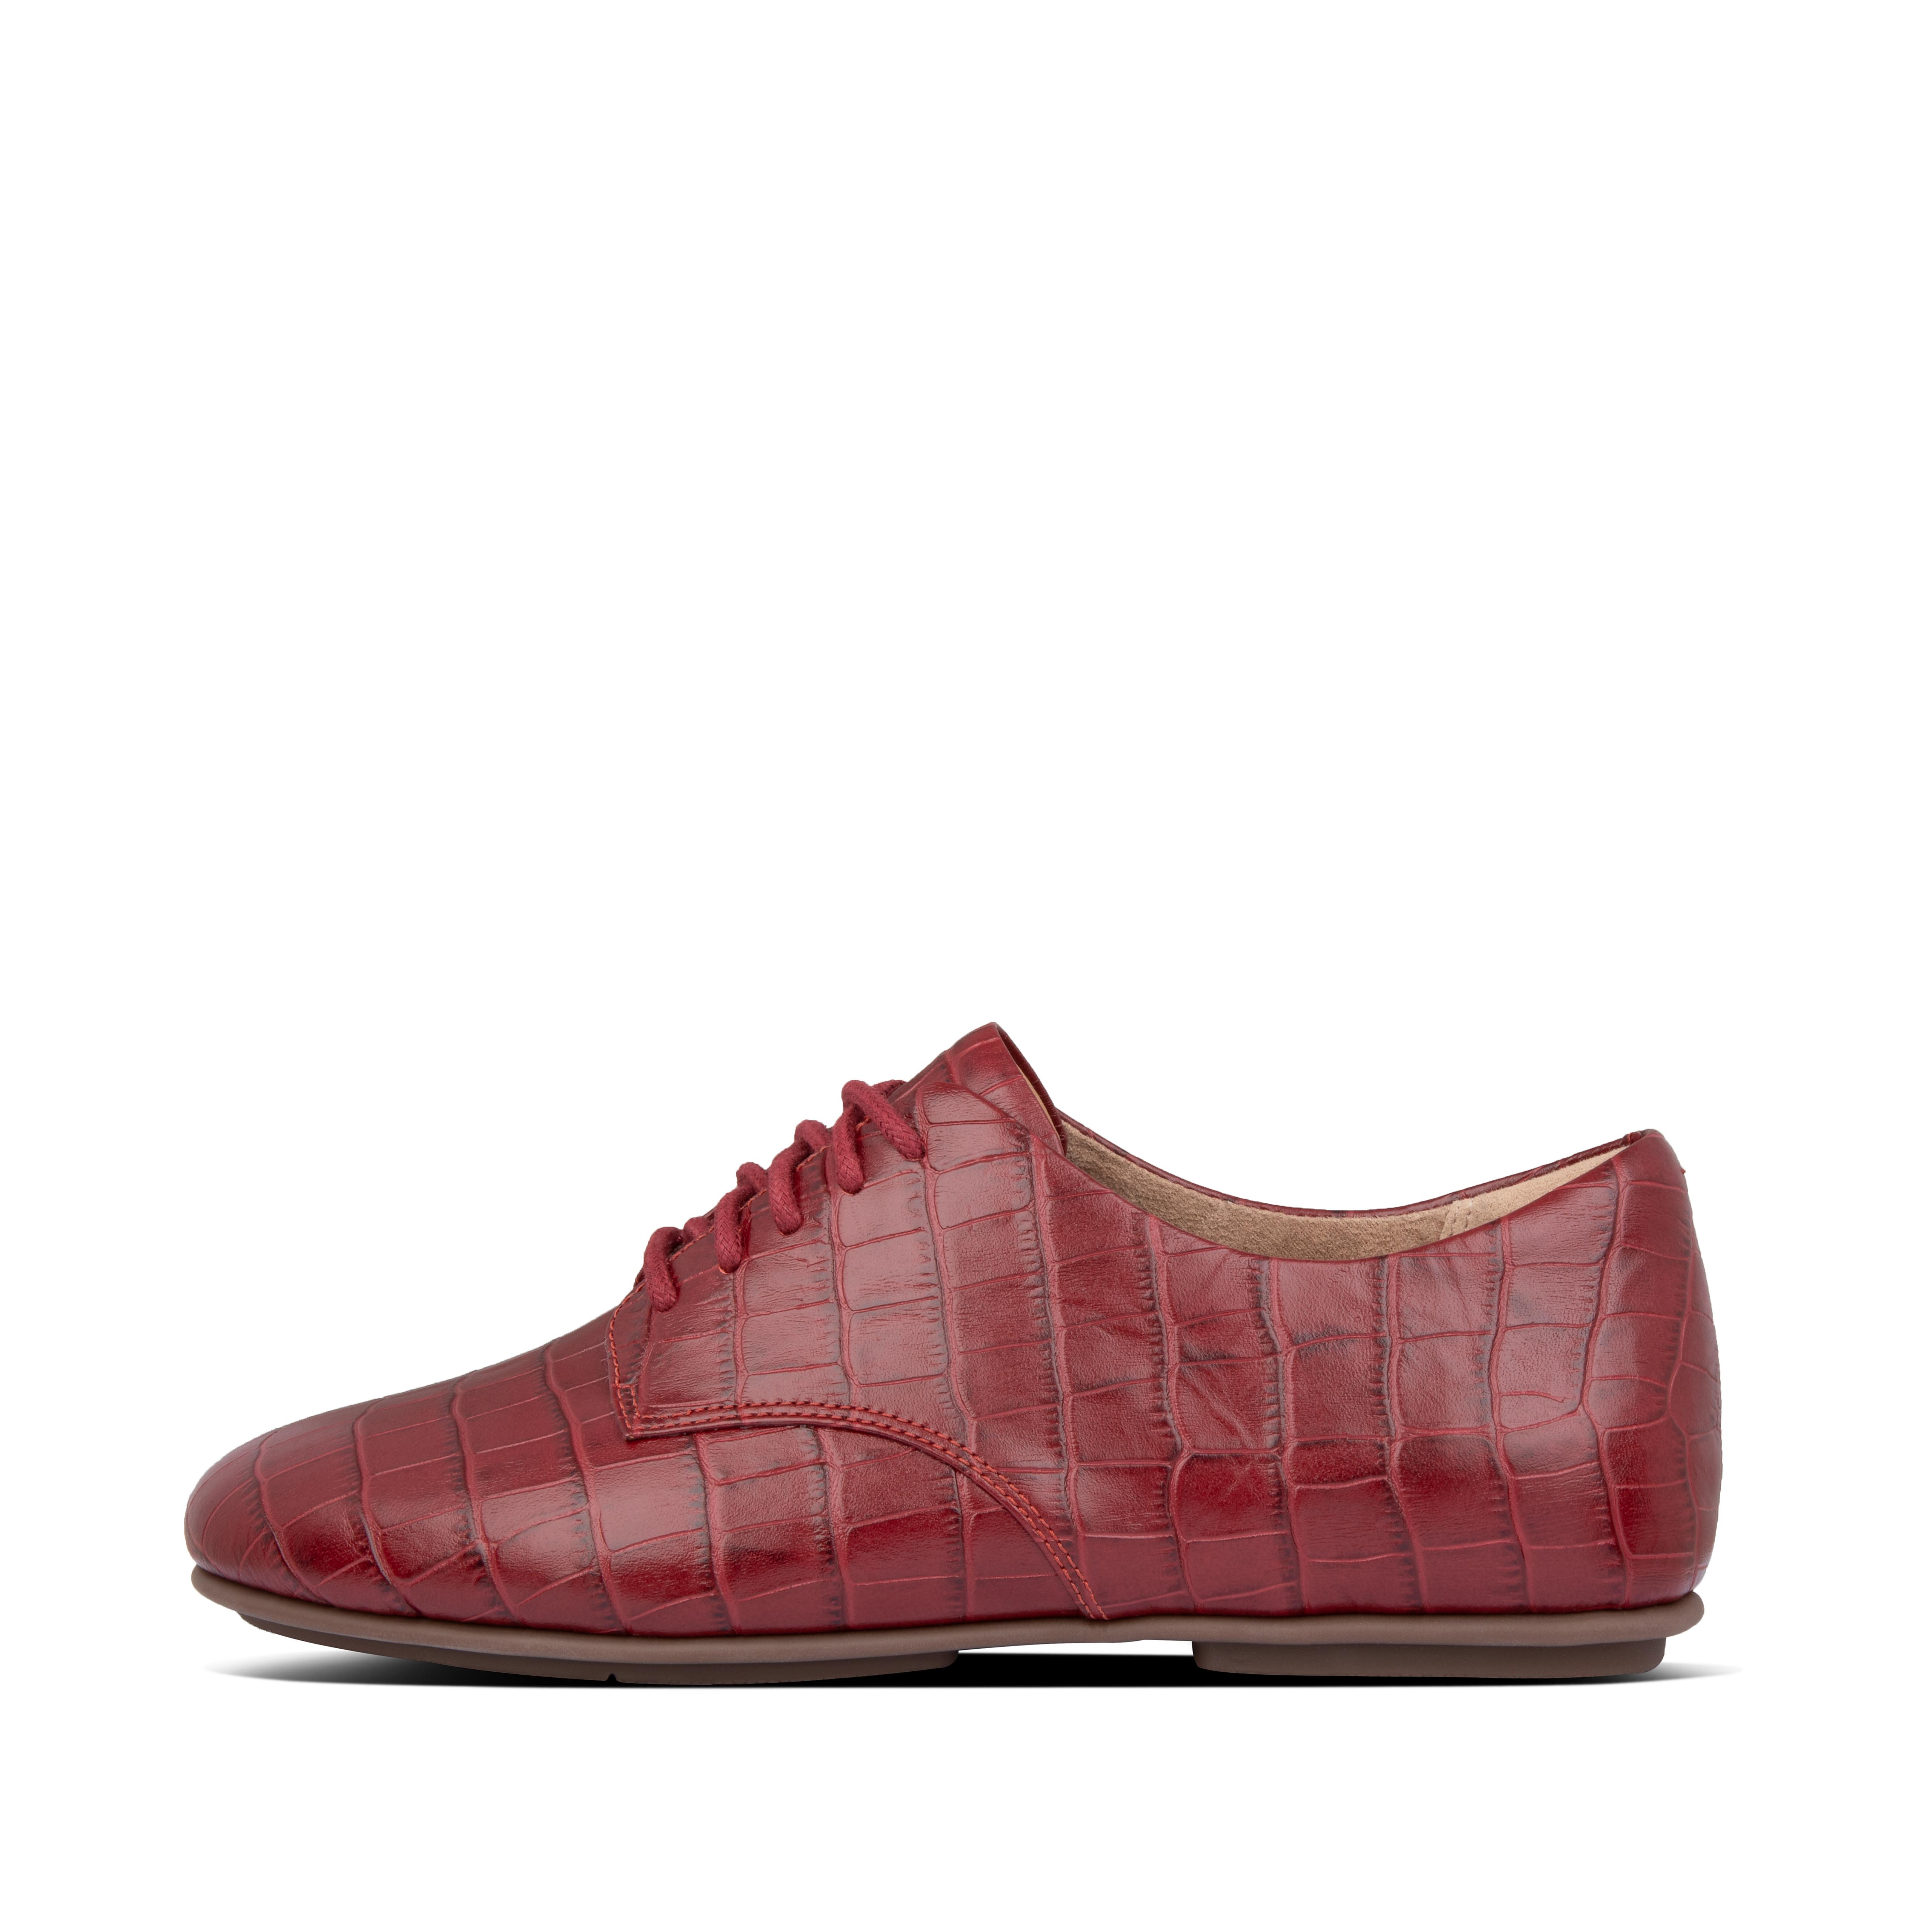 Warning: these lace-ups look so neat and sleek, the comfort and cushioning inside may come as a shock. This season in on-trend croc-emboss leather, they\\\'re classic, feminine, ultra-light. but slip them on and you\\\'ll think you\\\'re wearing sneakers. That\\\'s because of their footbed design (anatomically contoured to support your feet) and our high-rebound Dynamicush™ cushioning tech hidden in the \\\'flat\\\' soles. Supple, simple - and so comfortable.